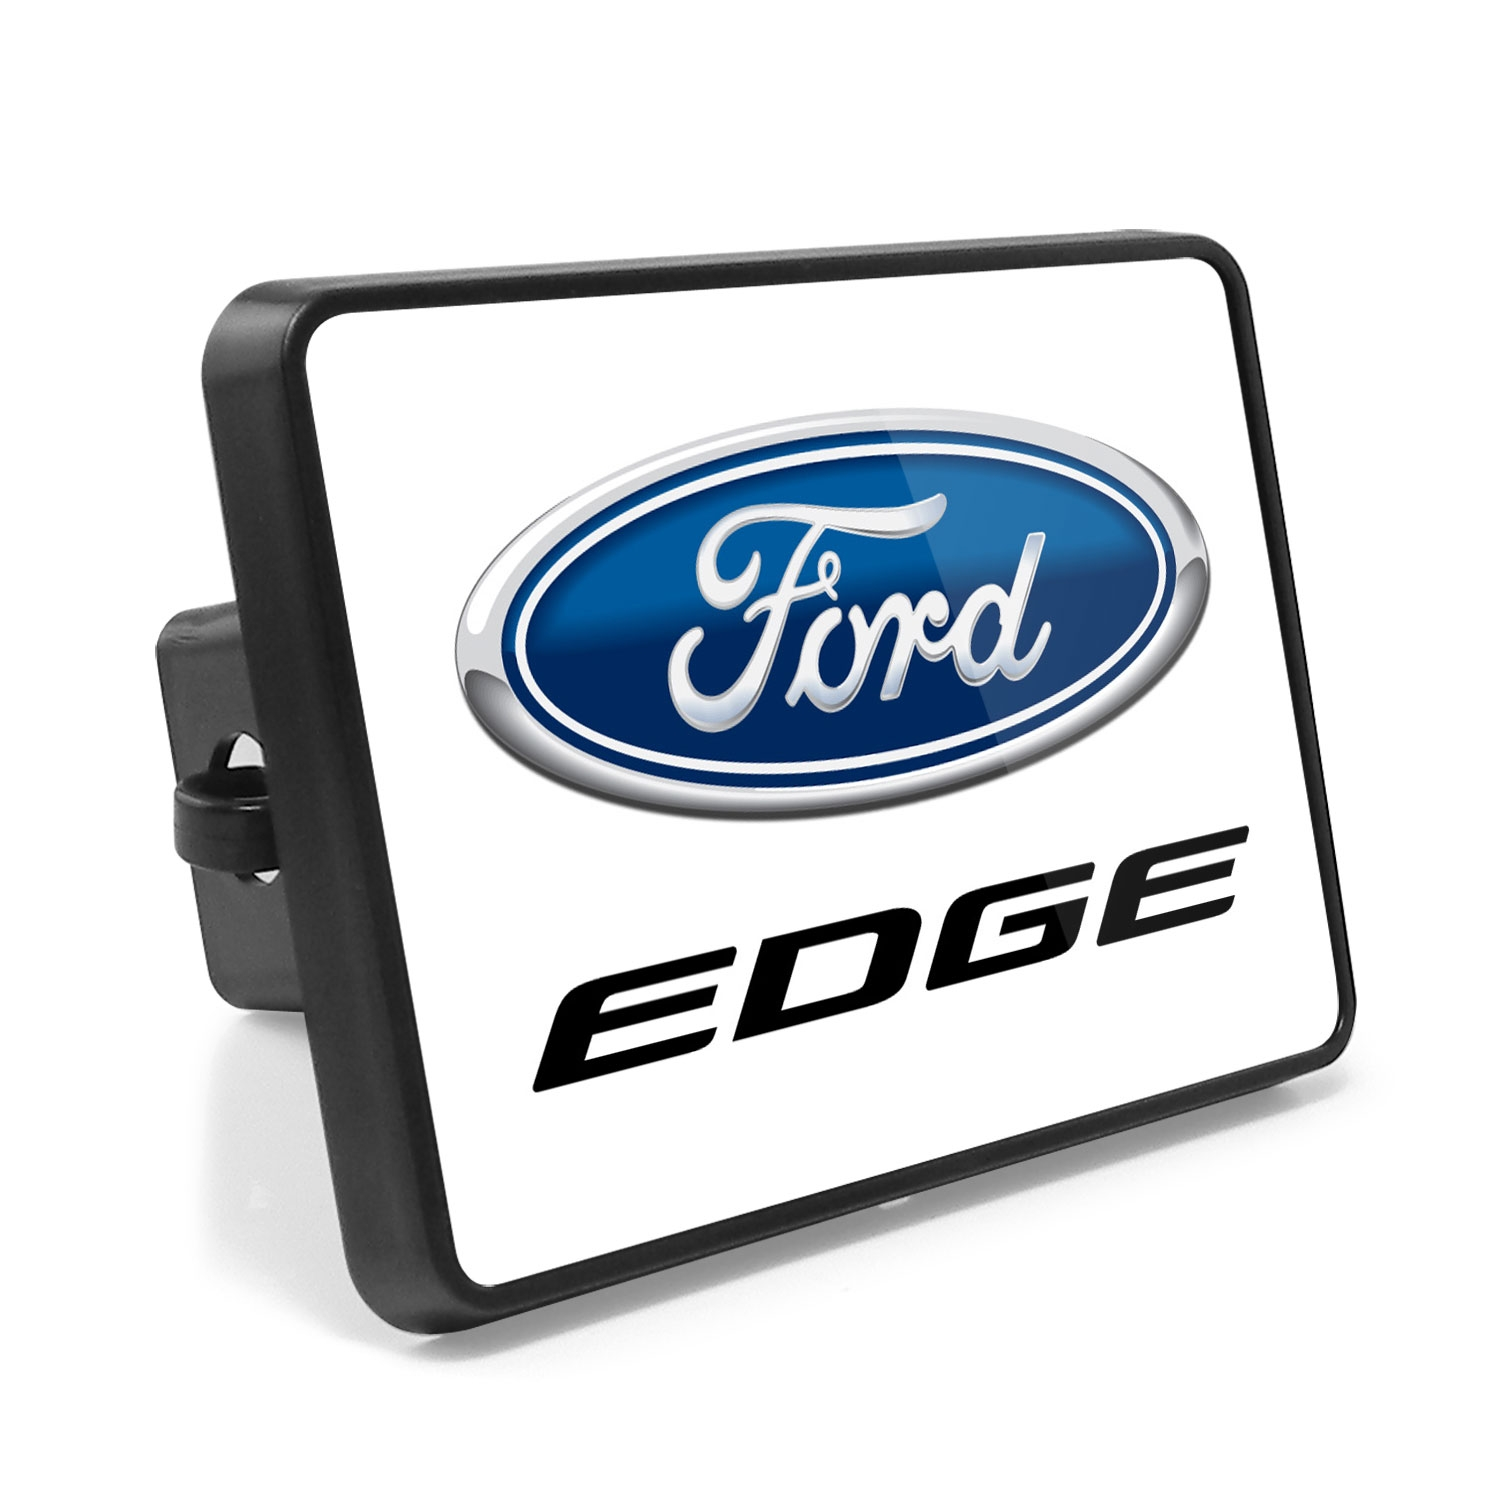 Ford Edge UV Graphic White Metal Plate on ABS Plastic 2 inch Tow Hitch Cover